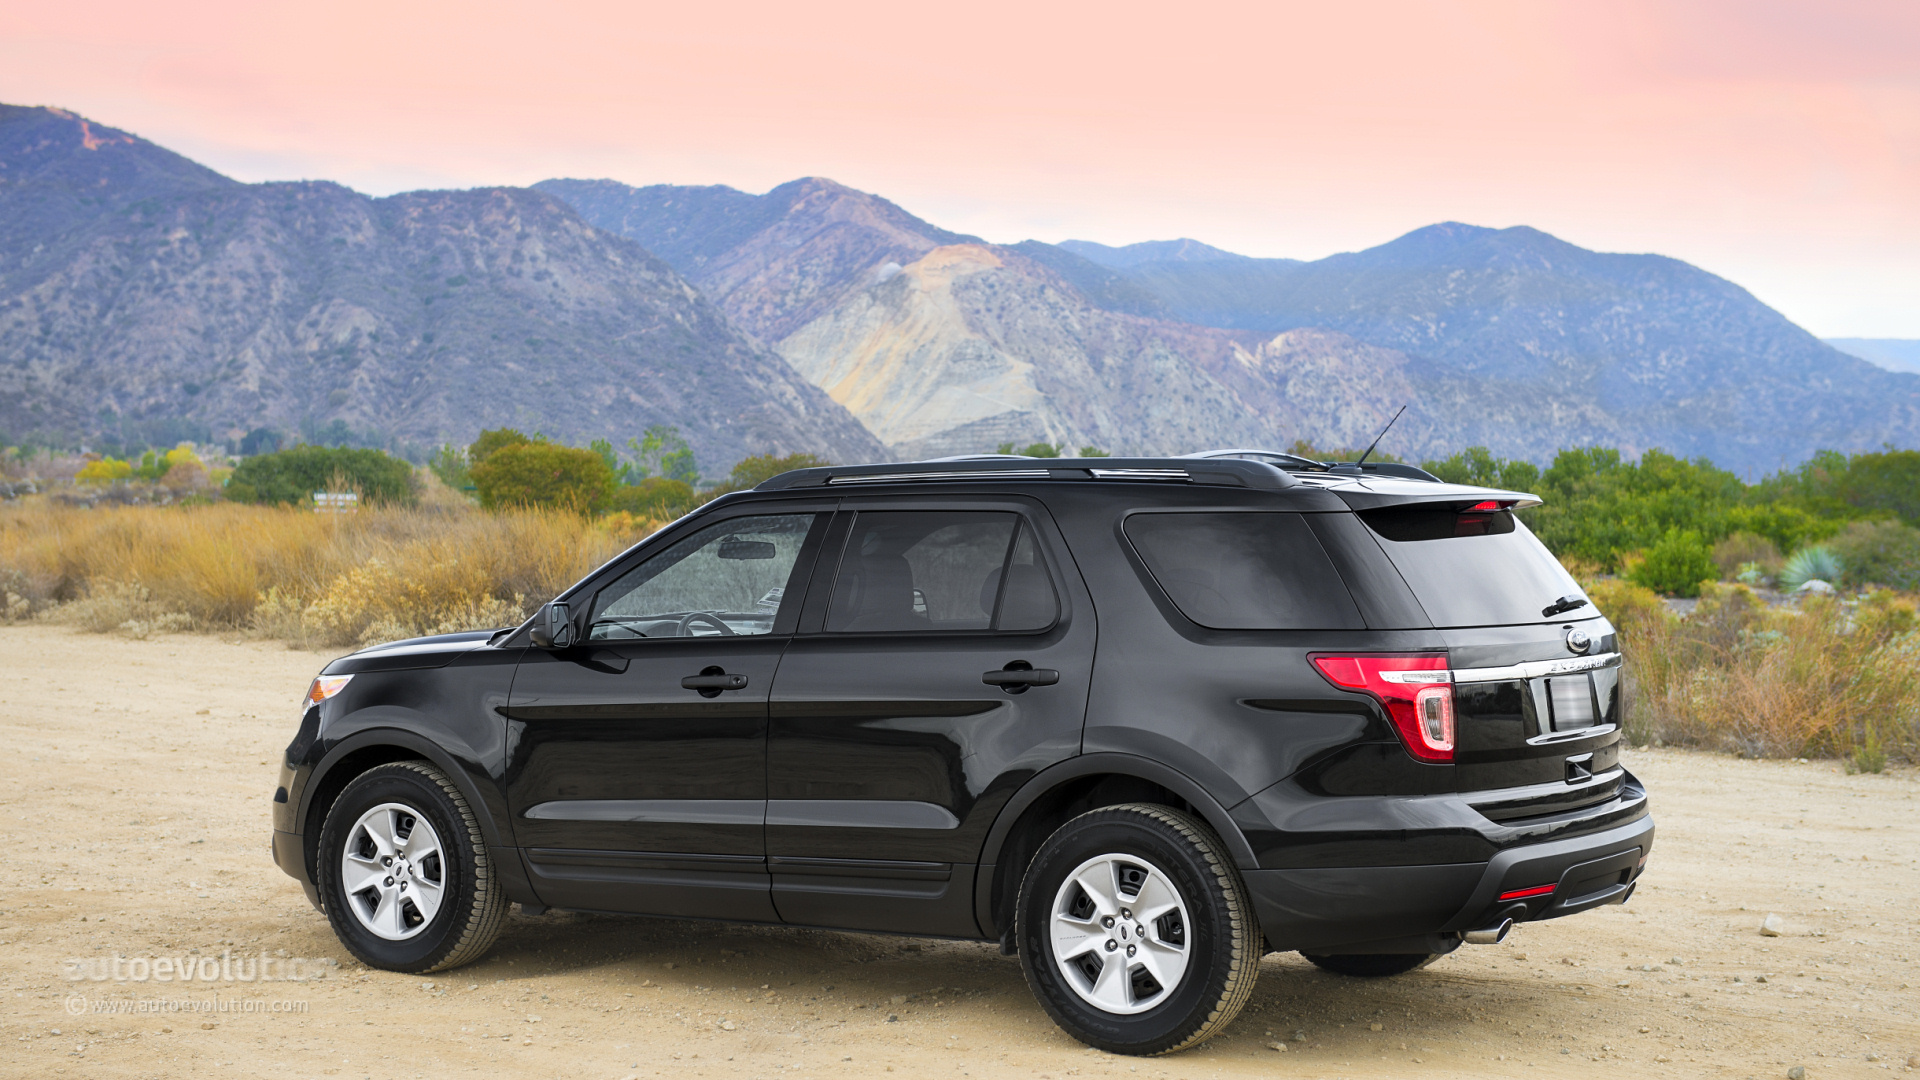 1920x1080 - Ford Explorer Wallpapers 10